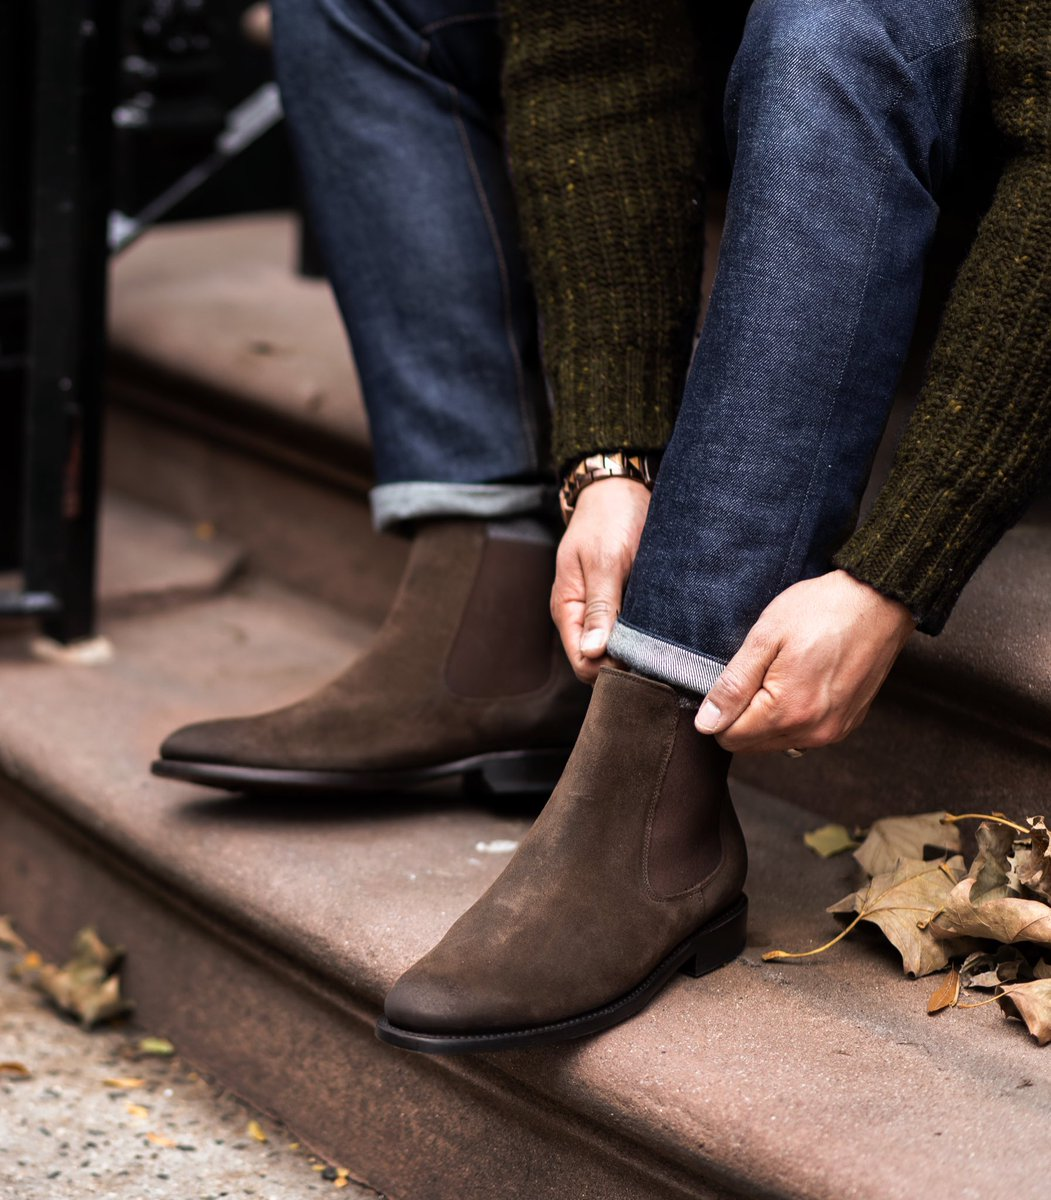 Back In Brown, Back In Stock, Back In Chocolate 🍫. 📸 @ishgarridophoto  #ThursdayBoots #Cavalier #SweetTooth